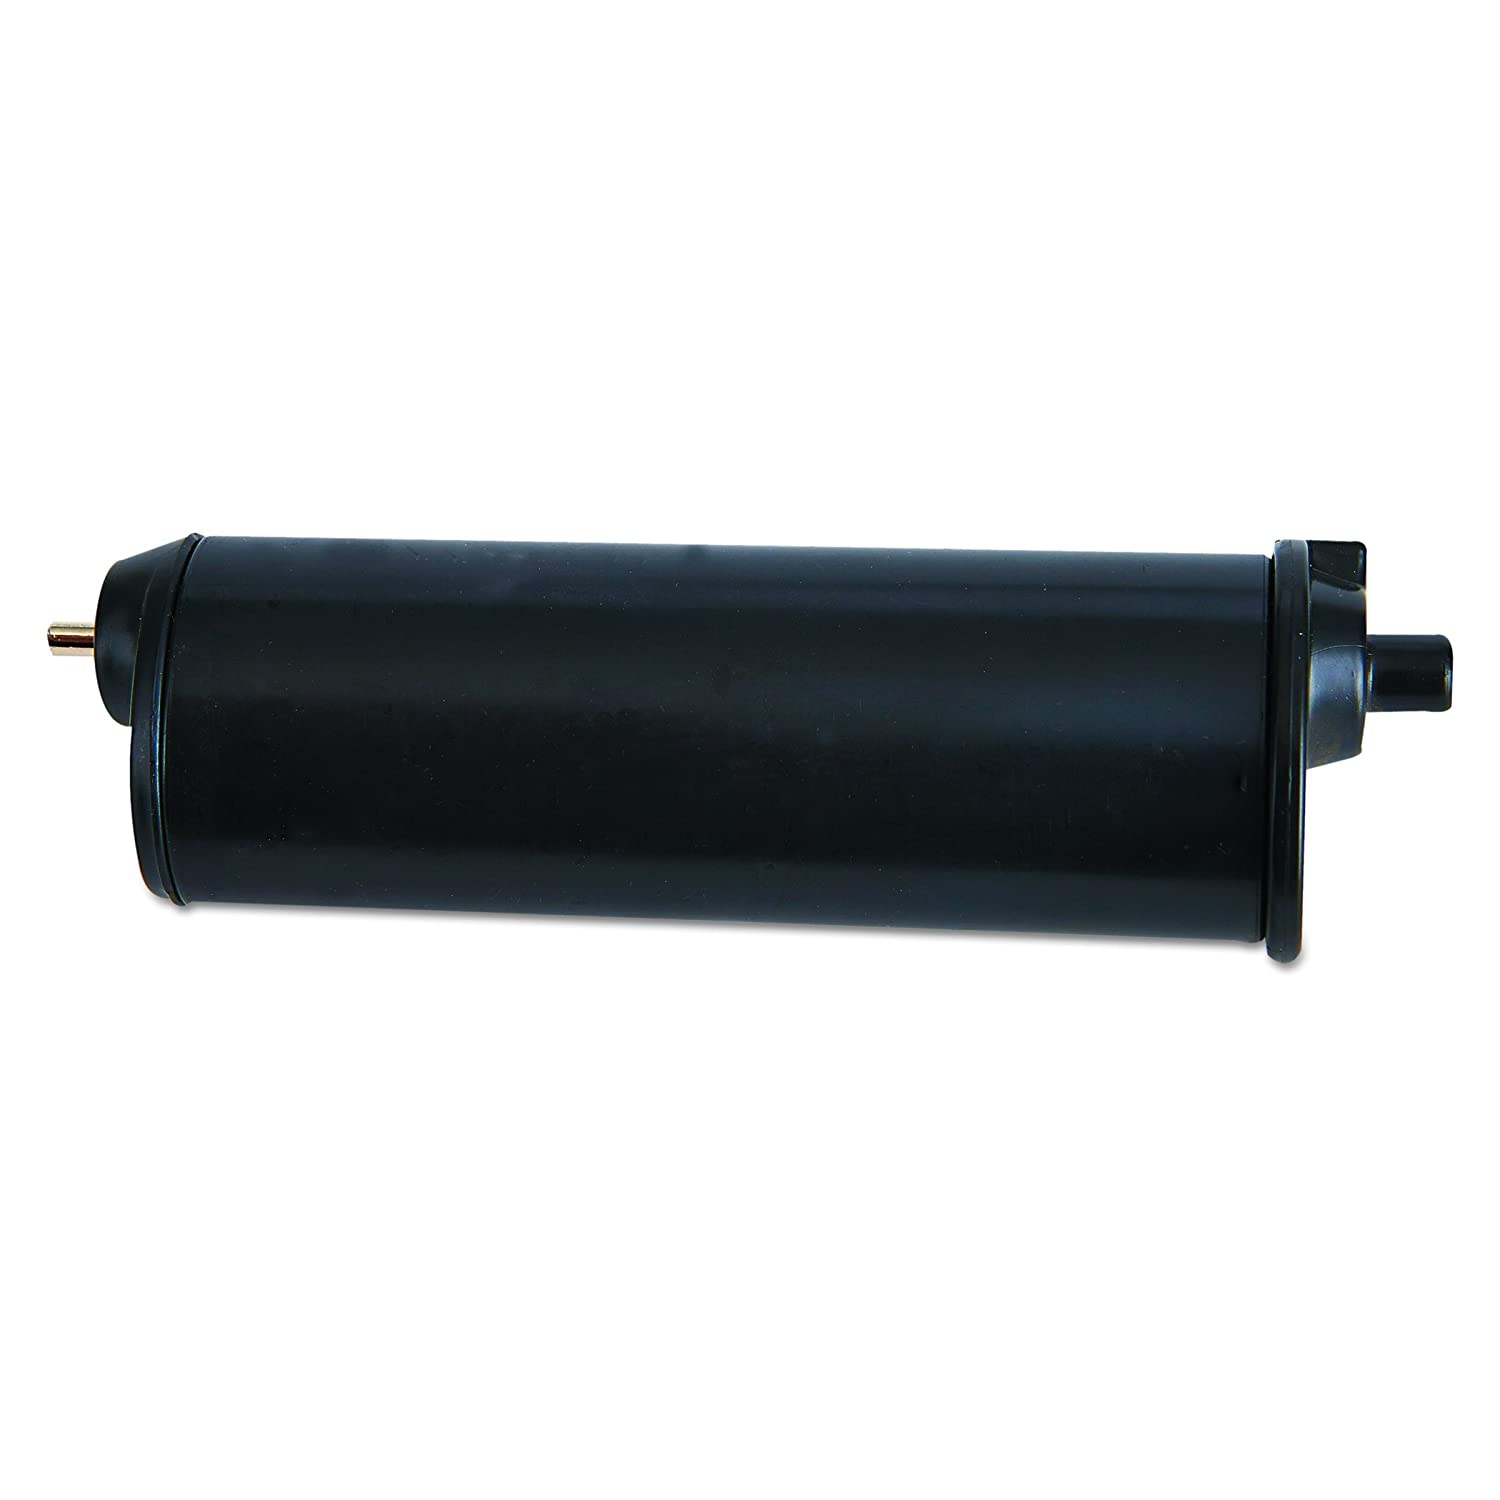 Bobrick 273-103 Theft Resistant Replacement Spindle